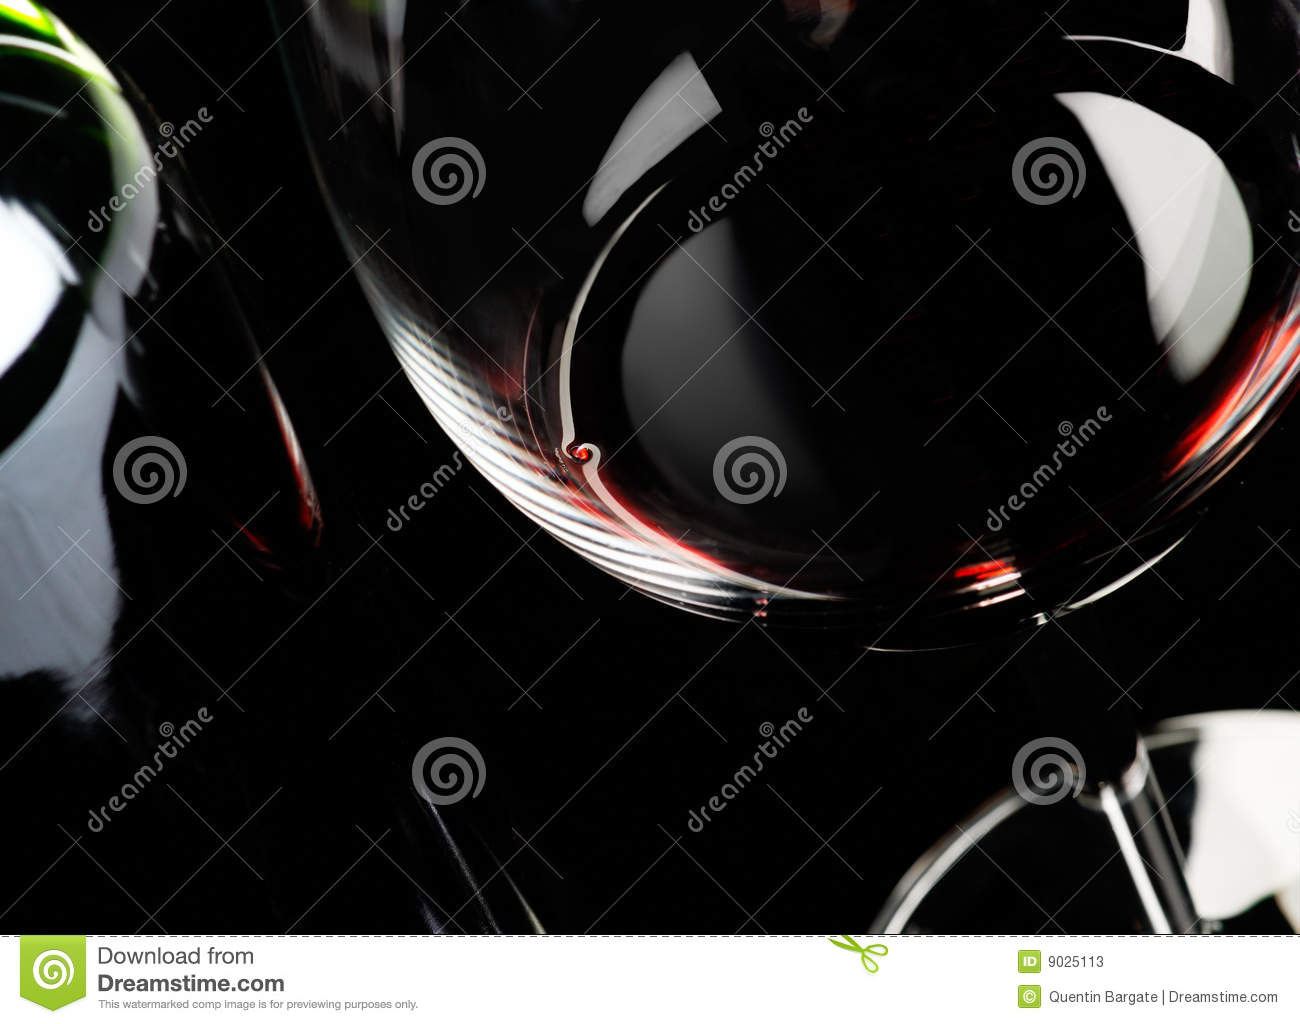 Wine glass and bottle abstract